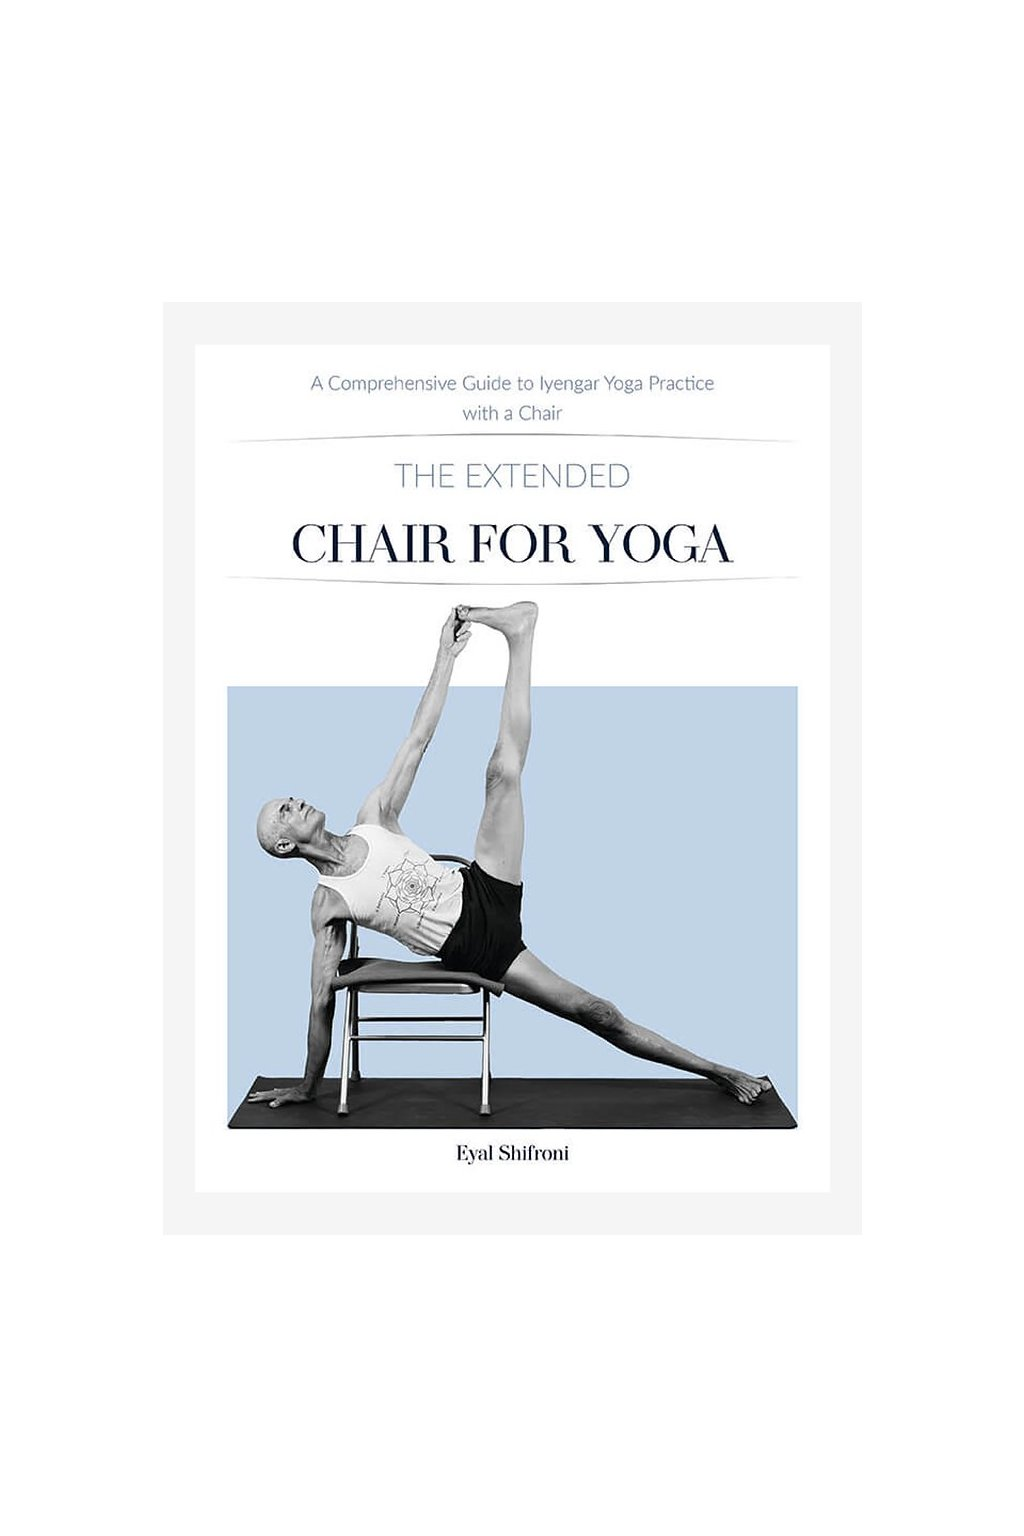 extended chair for yoga